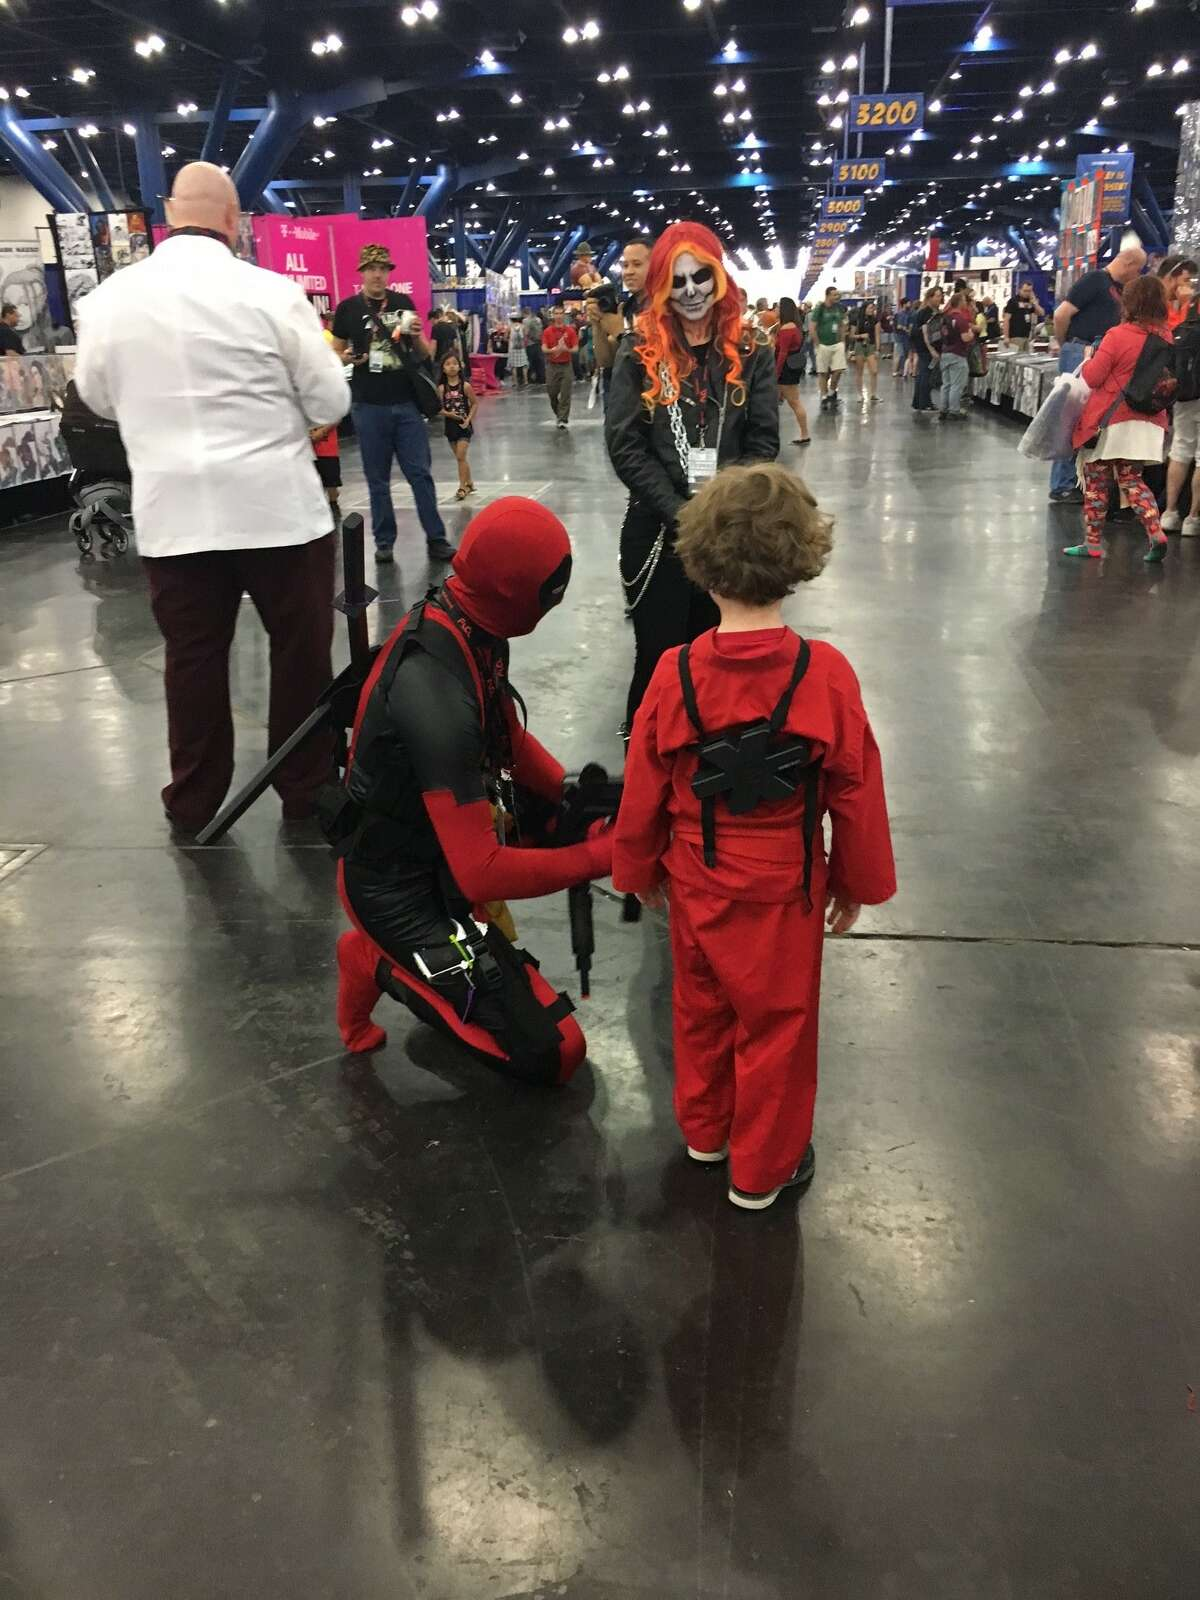 A small, but growing legion of fans attend the opening of Comicpalooza at the George R. Brown Convention Center in Houston, Texas on May 25, 2018.